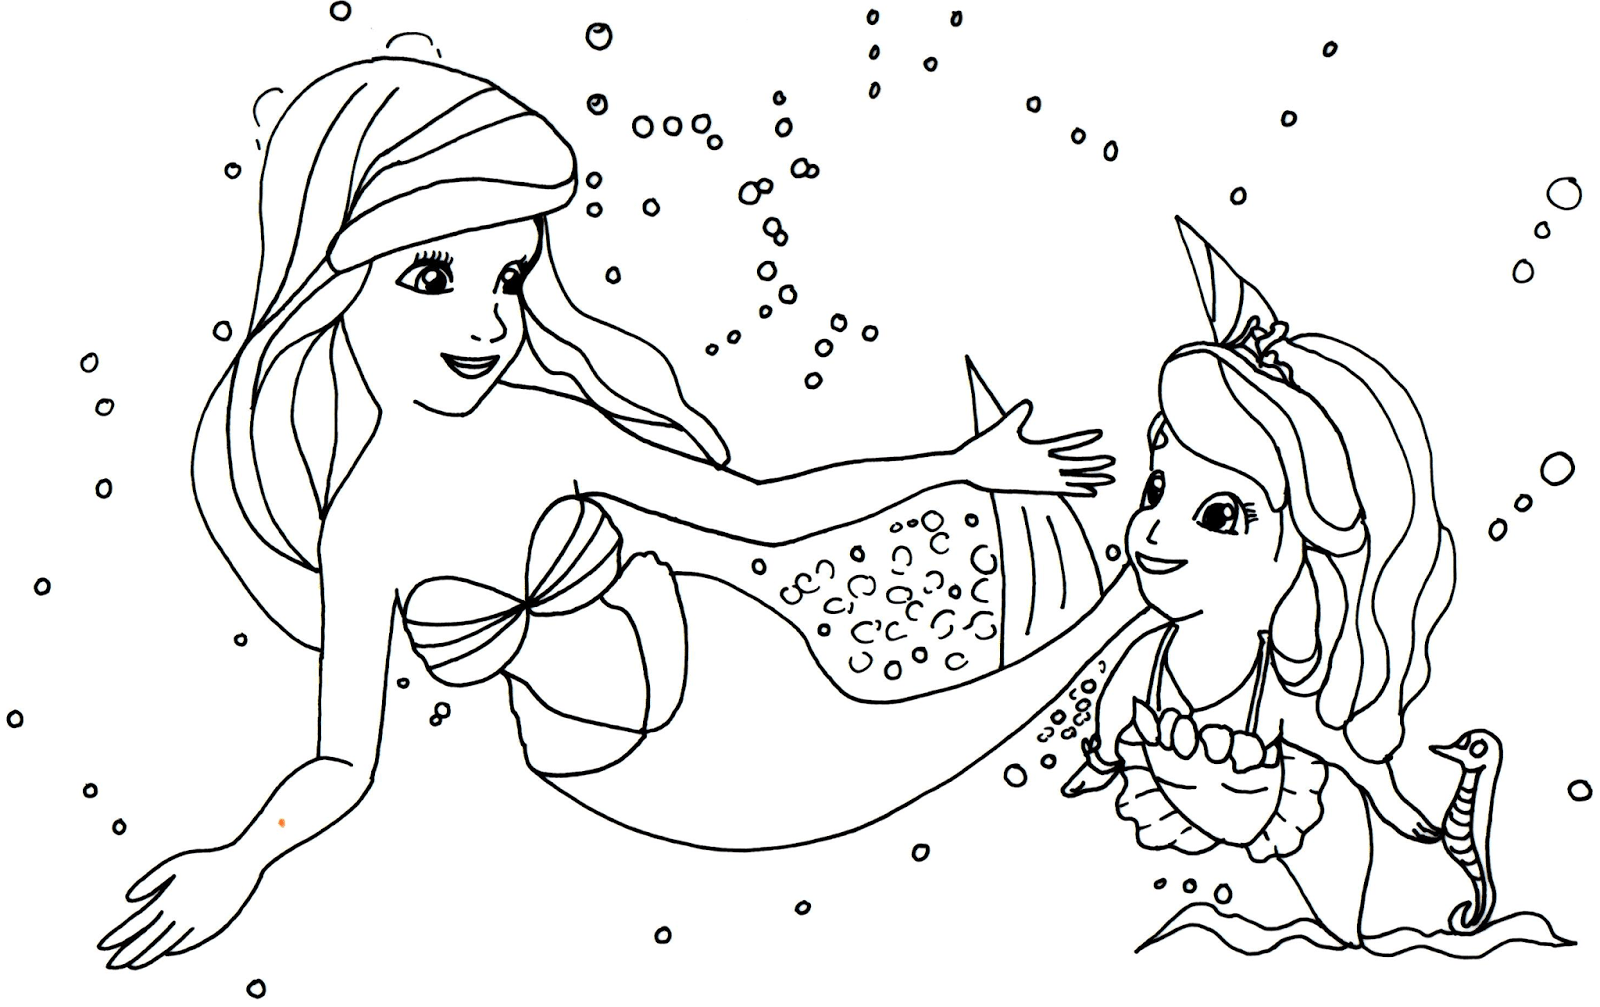 27 Free Sofia The First Coloring Pages, Sofia The First Coloring